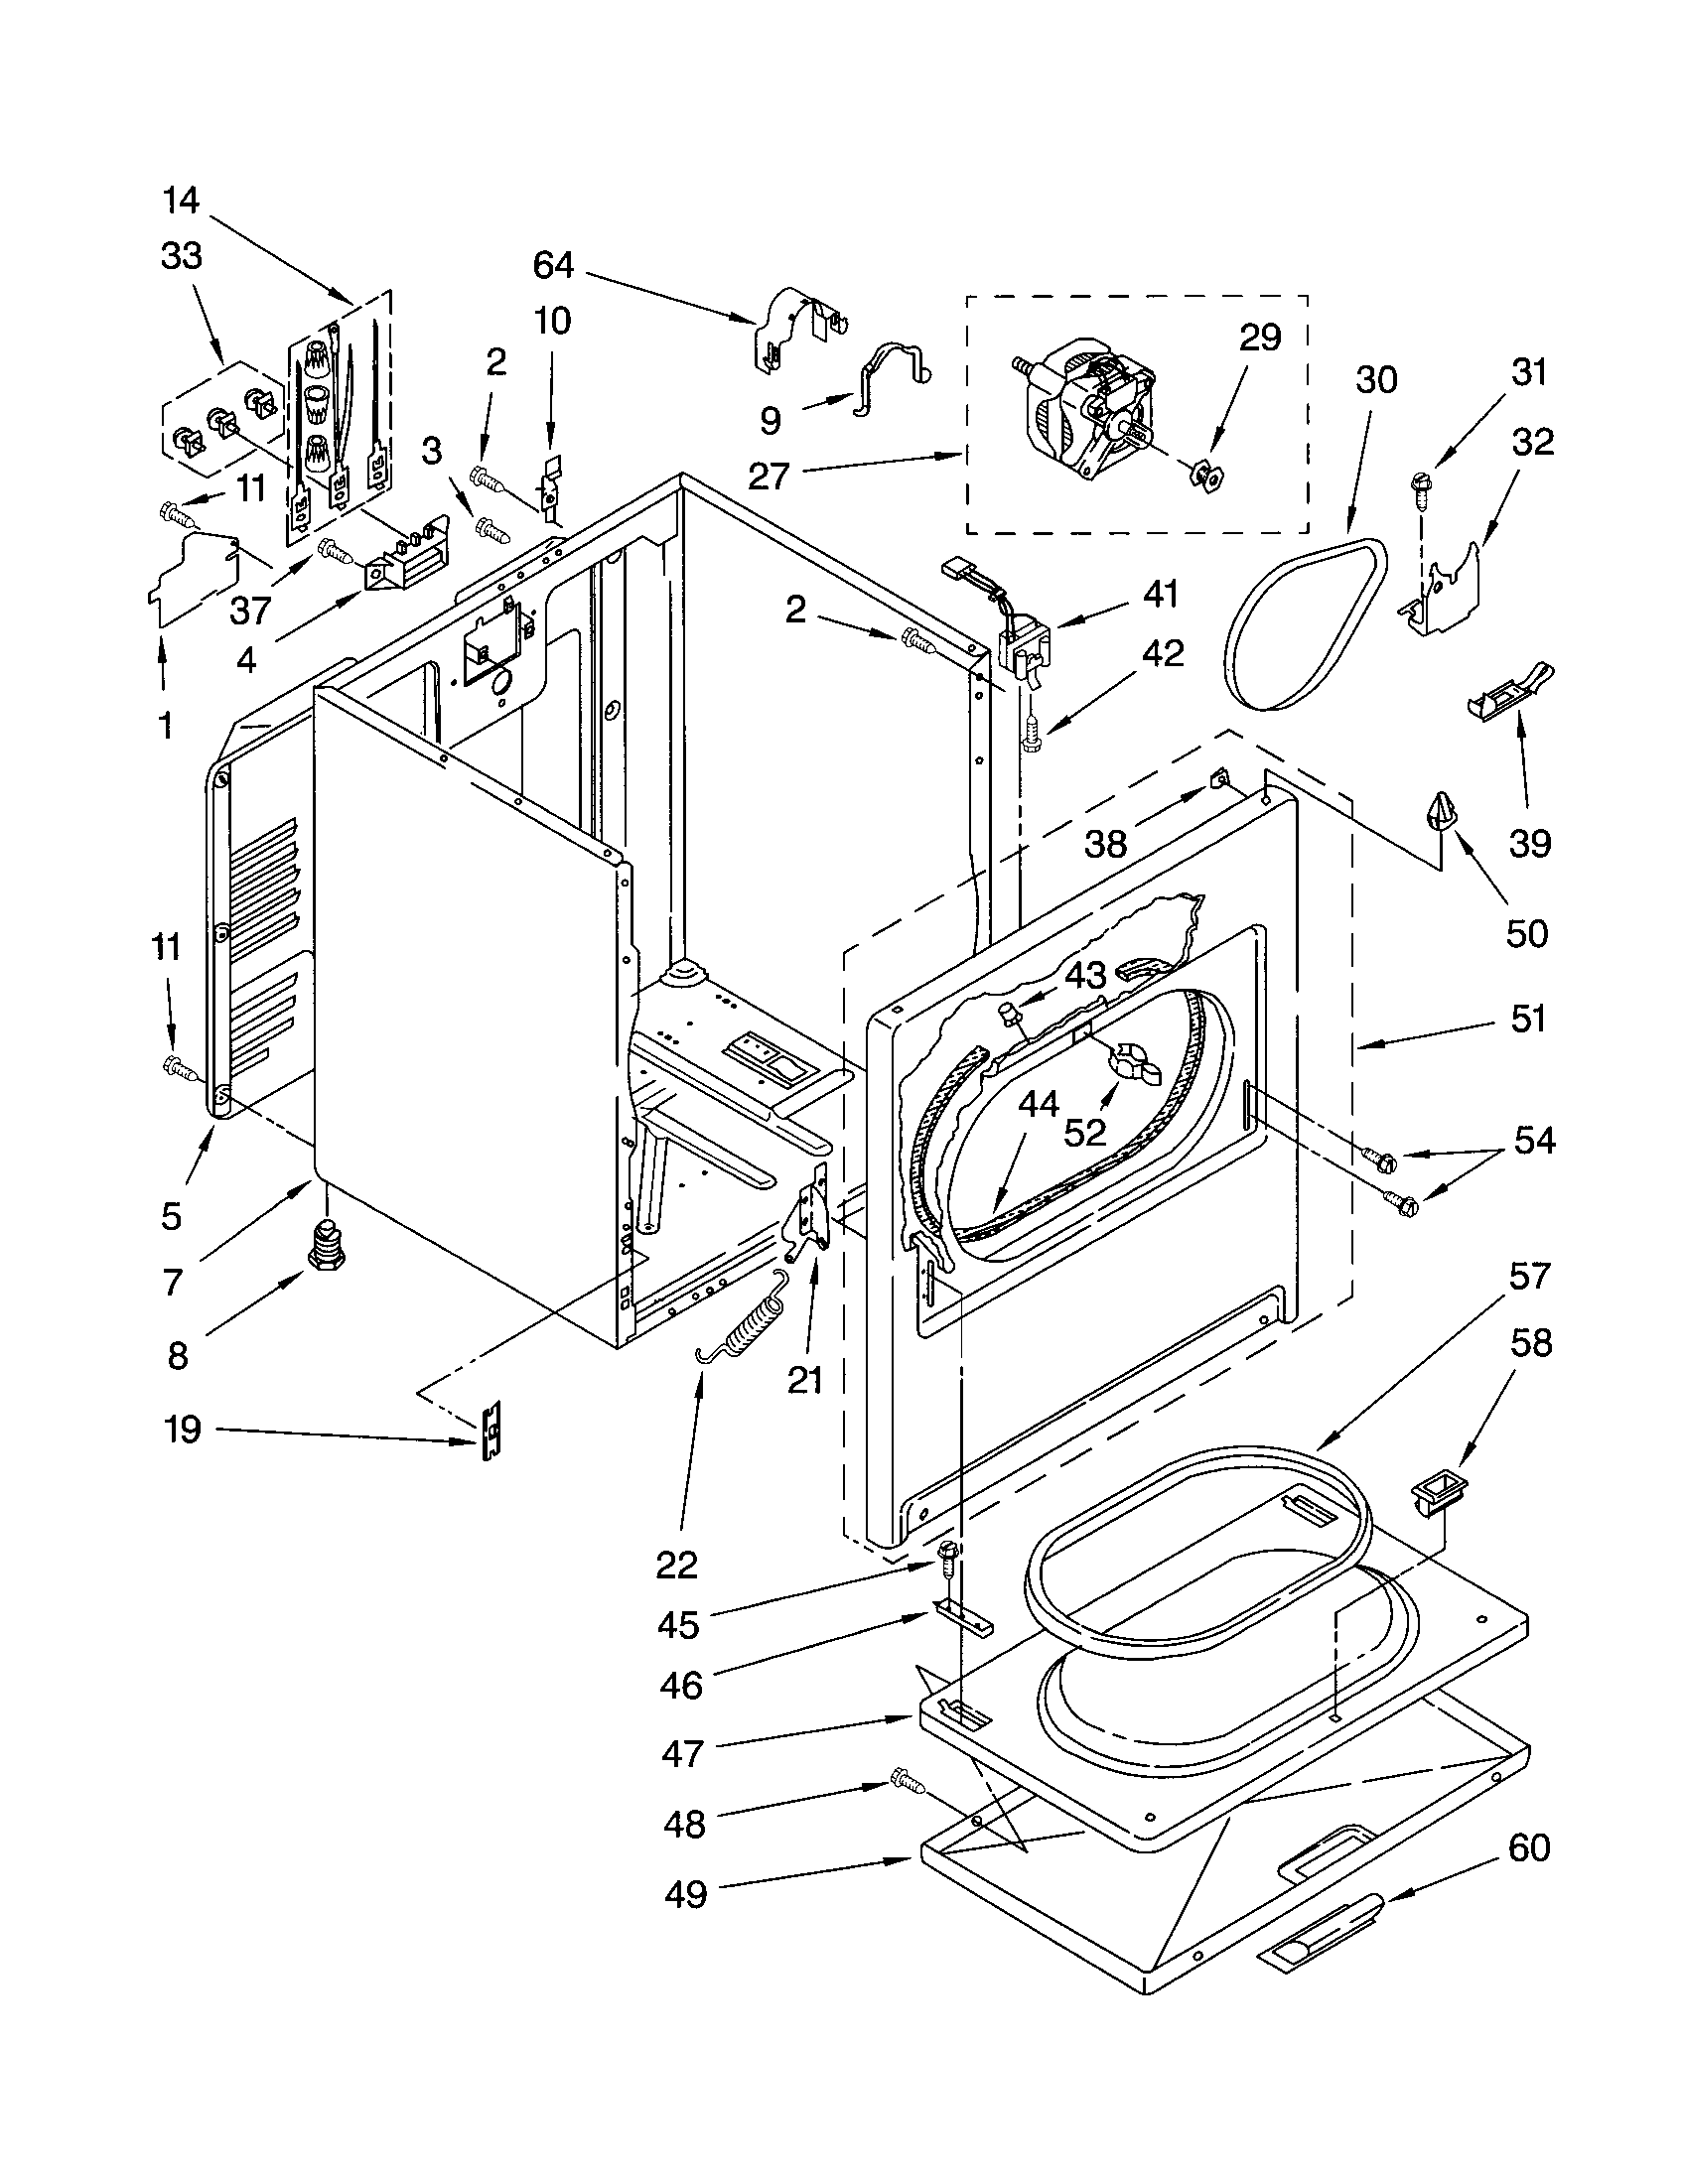 CABINET Diagram & Parts List for Model 11062812101 Kenmore